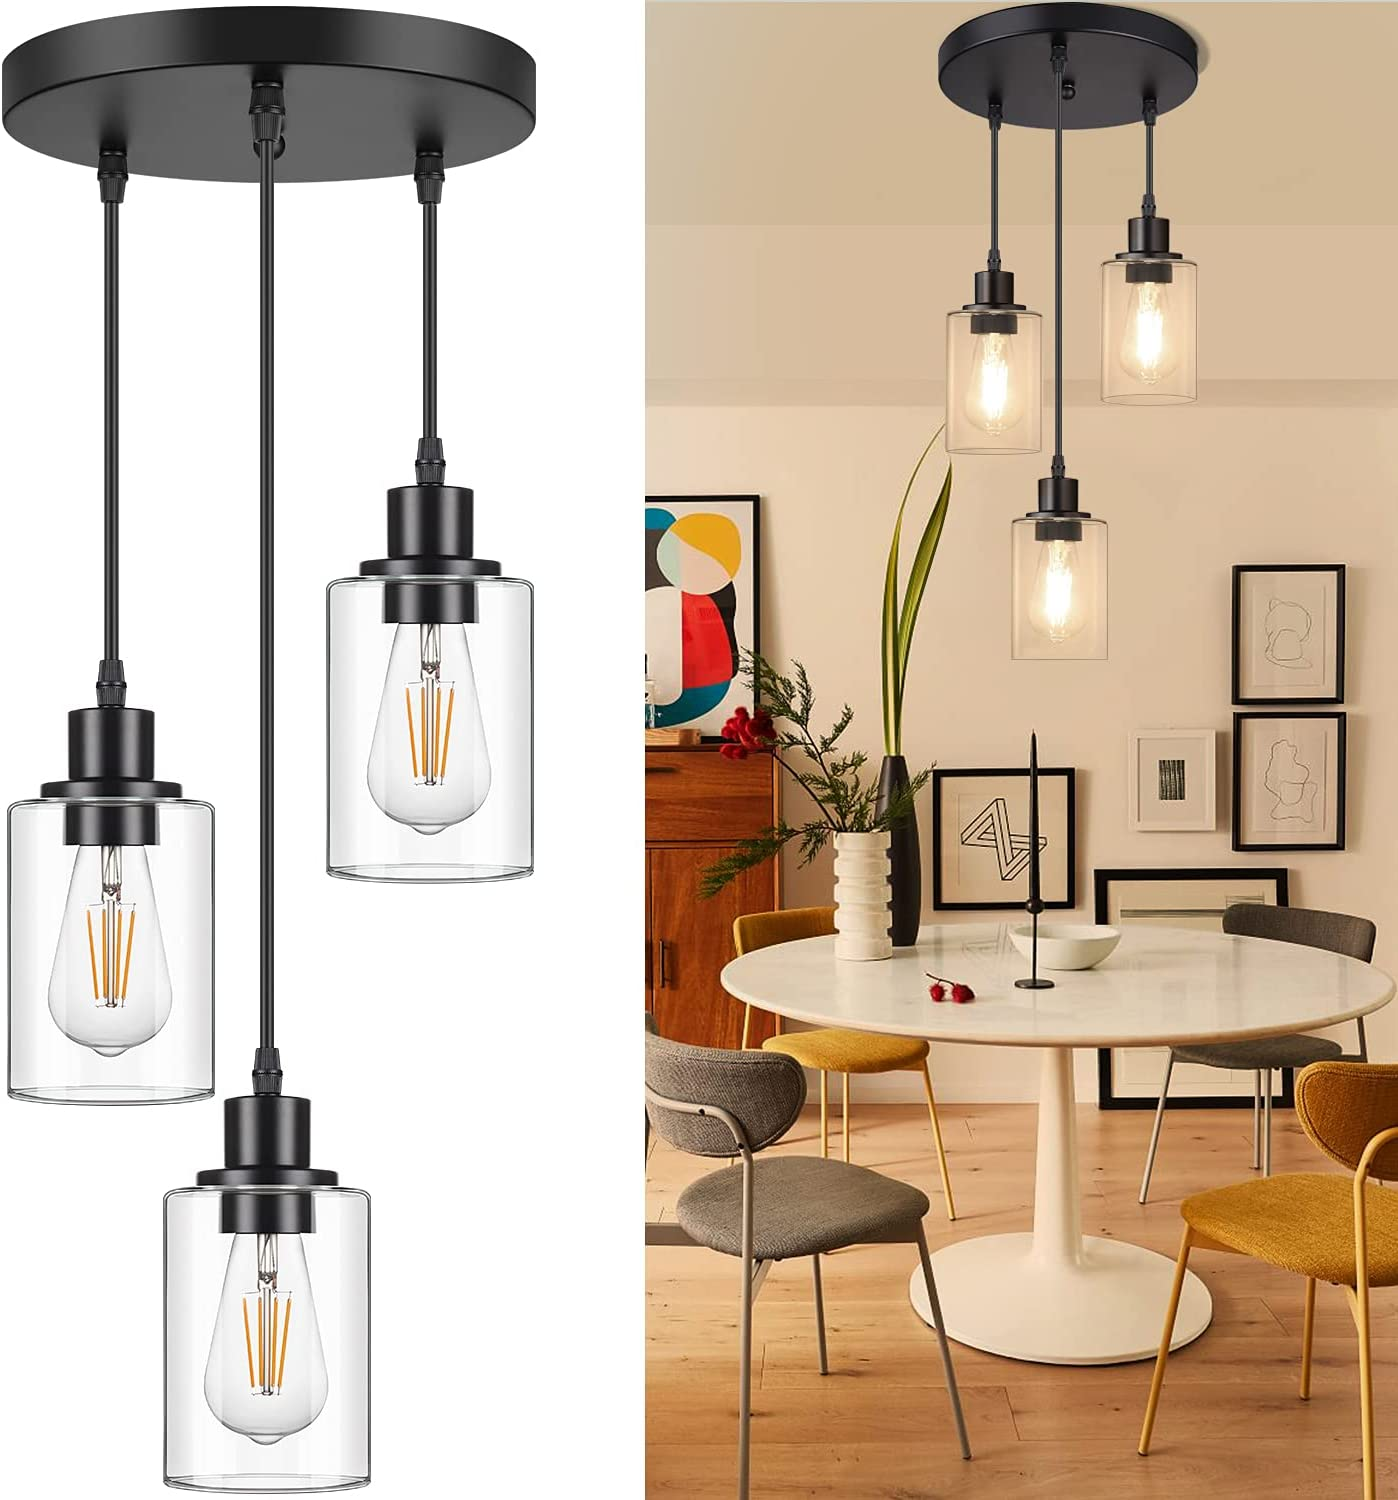 Industrial 3-Light Pendant Light, Adjustable Hanging Light Fixture with Clear Glass Shade, Mini Pendant Lighting, Vintage Farmhouse Ceiling Lamp for Kitchen Dining Room Hallway Bedroom E26 Base, Black